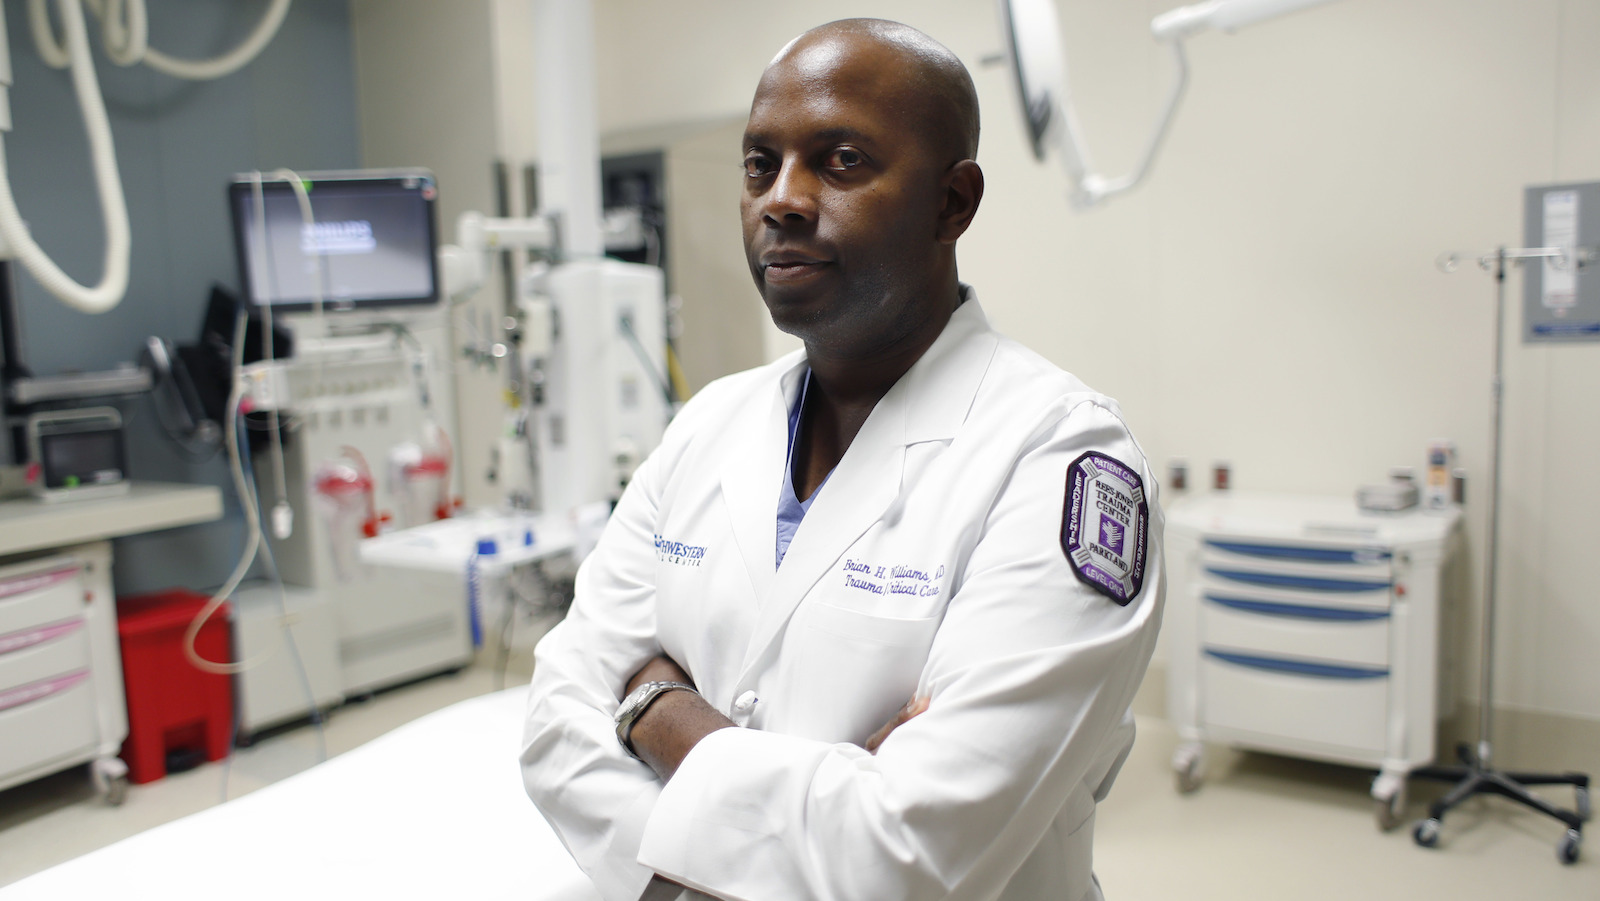 Dr. Brian H. Williams, a trauma surgeon at Parkland Memorial Hospital, poses for a photo at the hospital, Monday, July 11, 2016, in Dallas. Williams treated some of the Dallas police officers who were shot Thursday night in downtown Dallas. (AP Photo/Eric Gay)